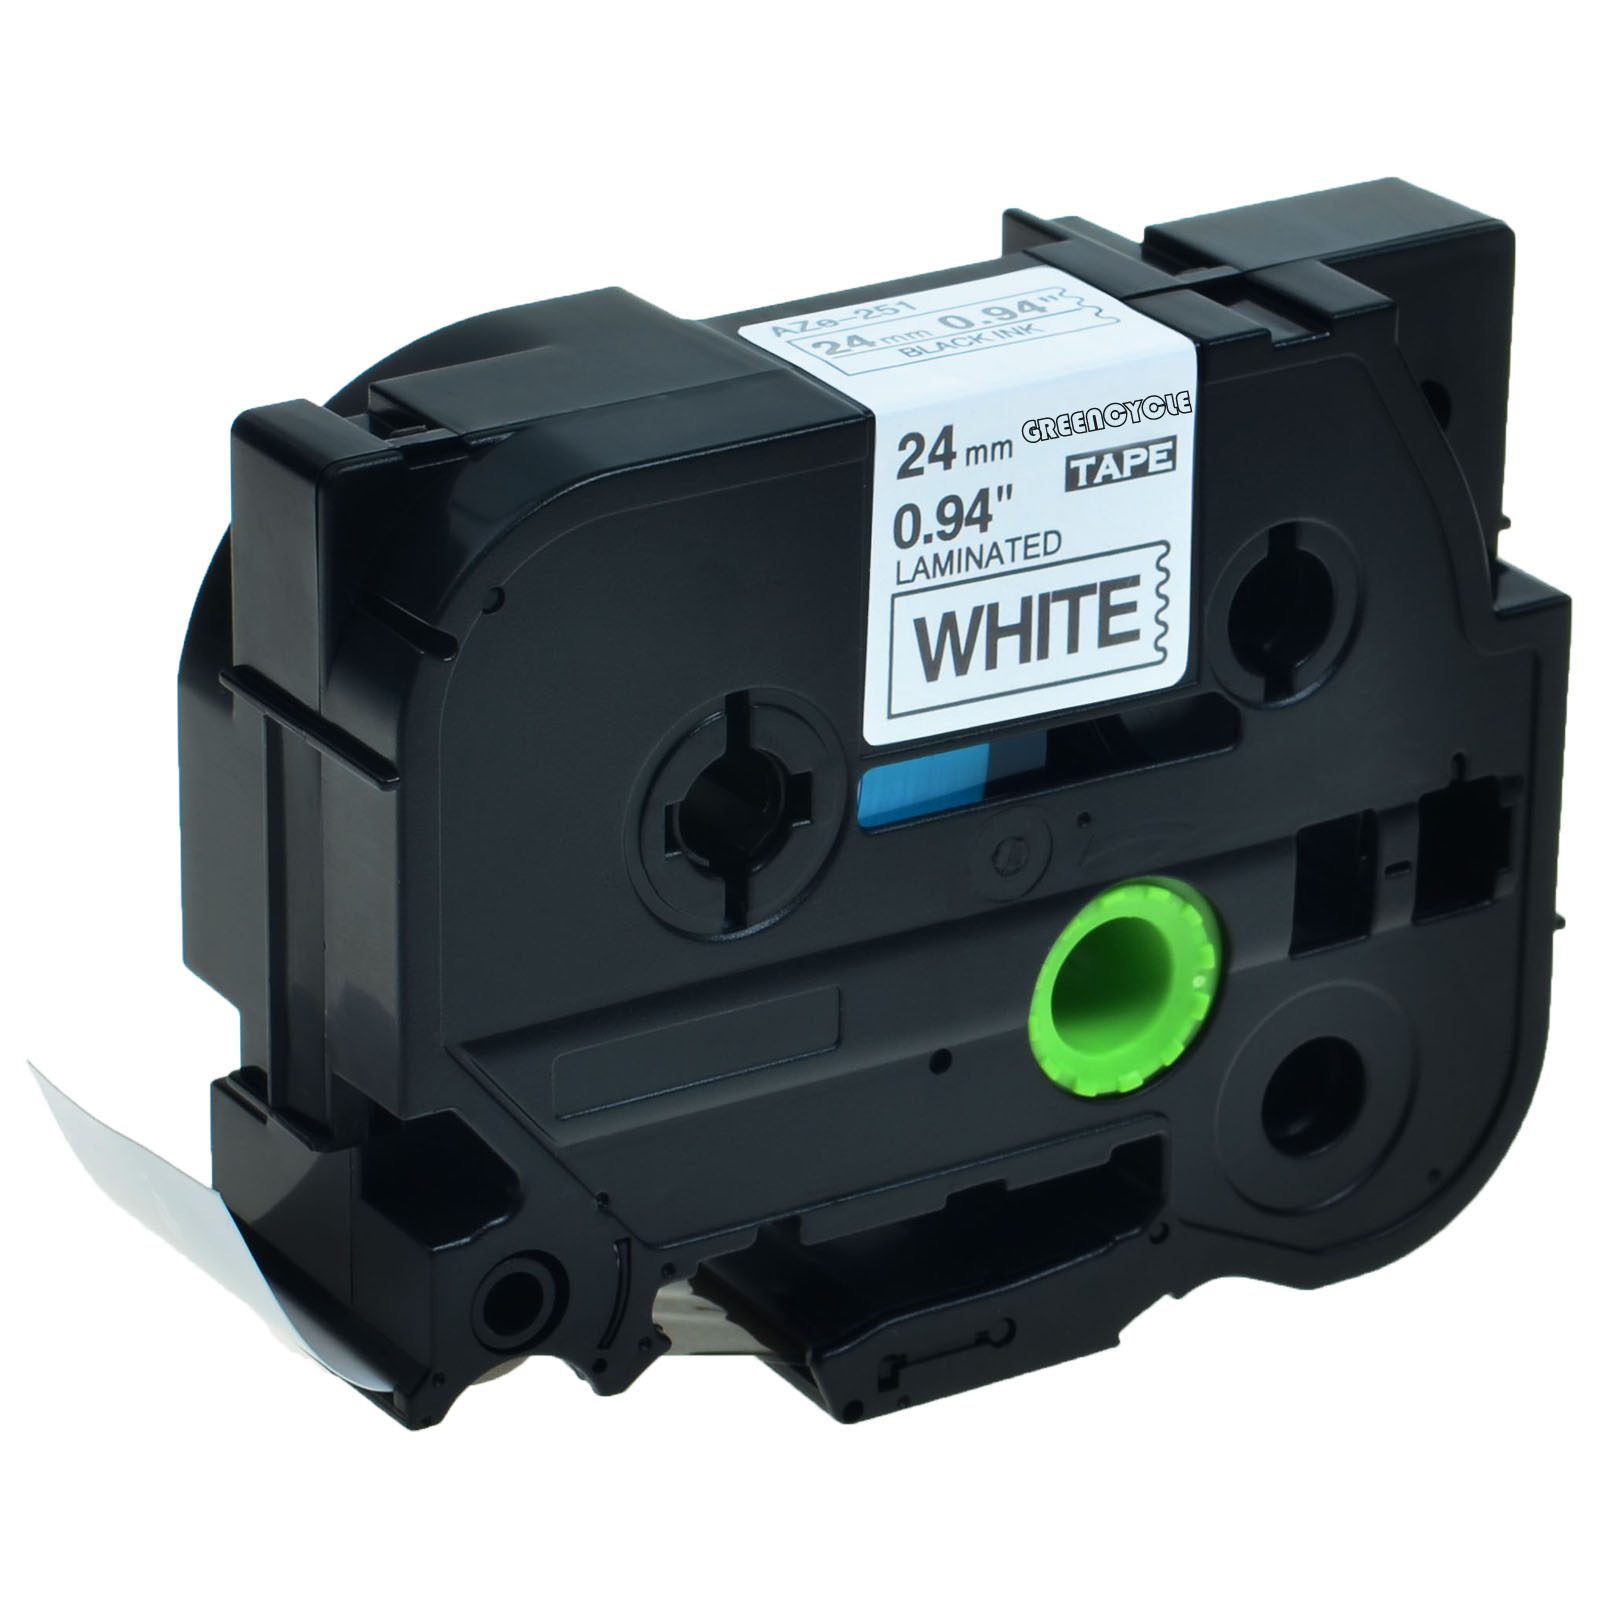 Black on White Label Tape Compatible for Brother TZ Tze 251 Tze-251 P-Touch 24mm